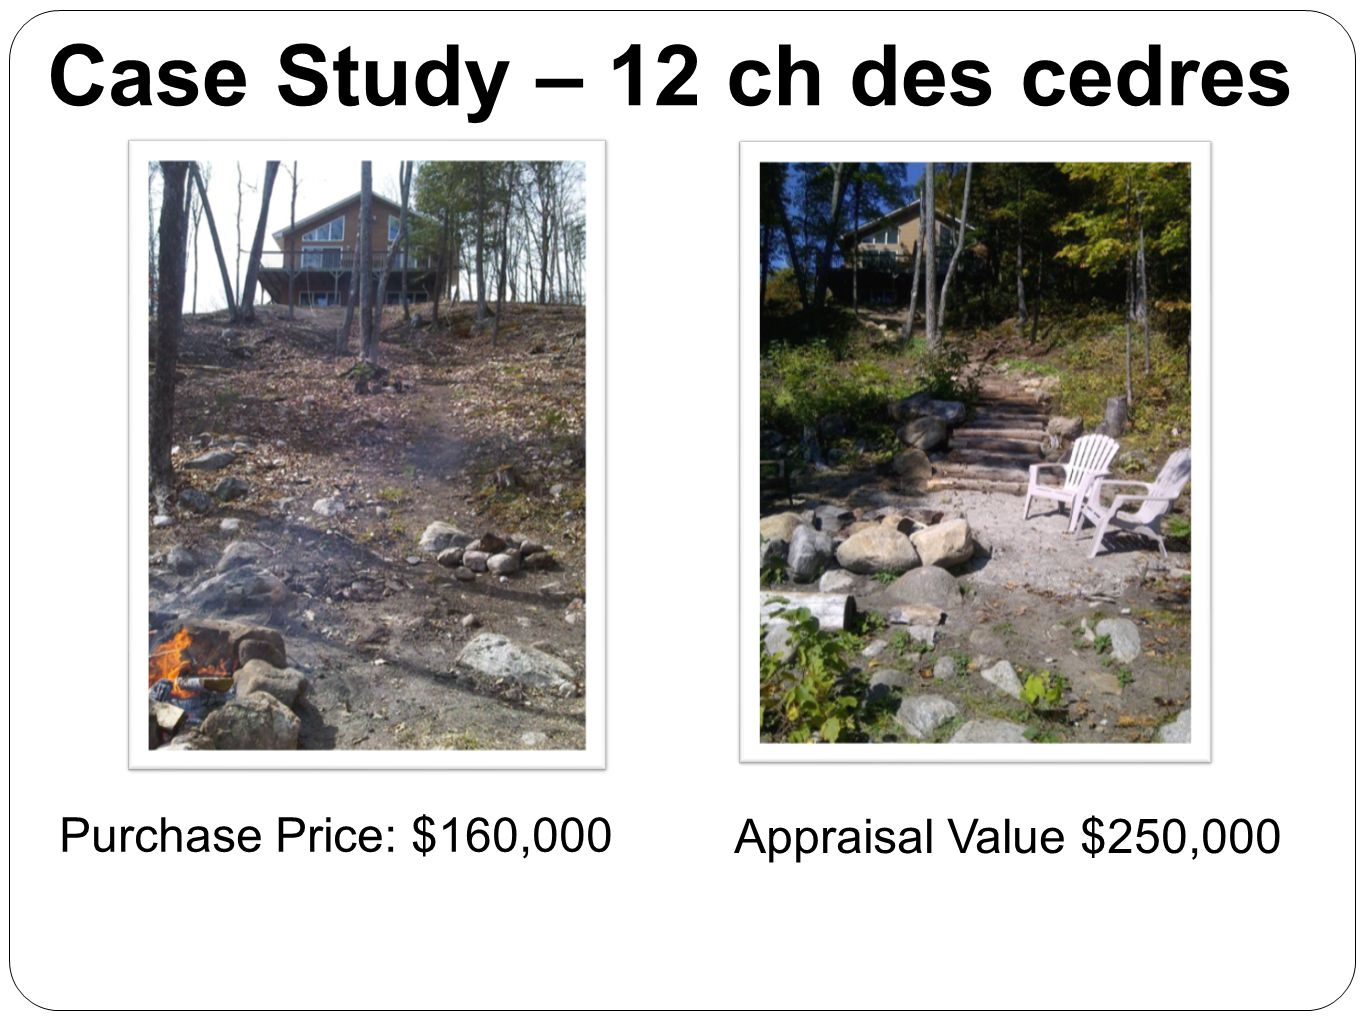 Case Study – 12 ch des cedres Purchase Price: $160,000 Appraisal Value $250,000